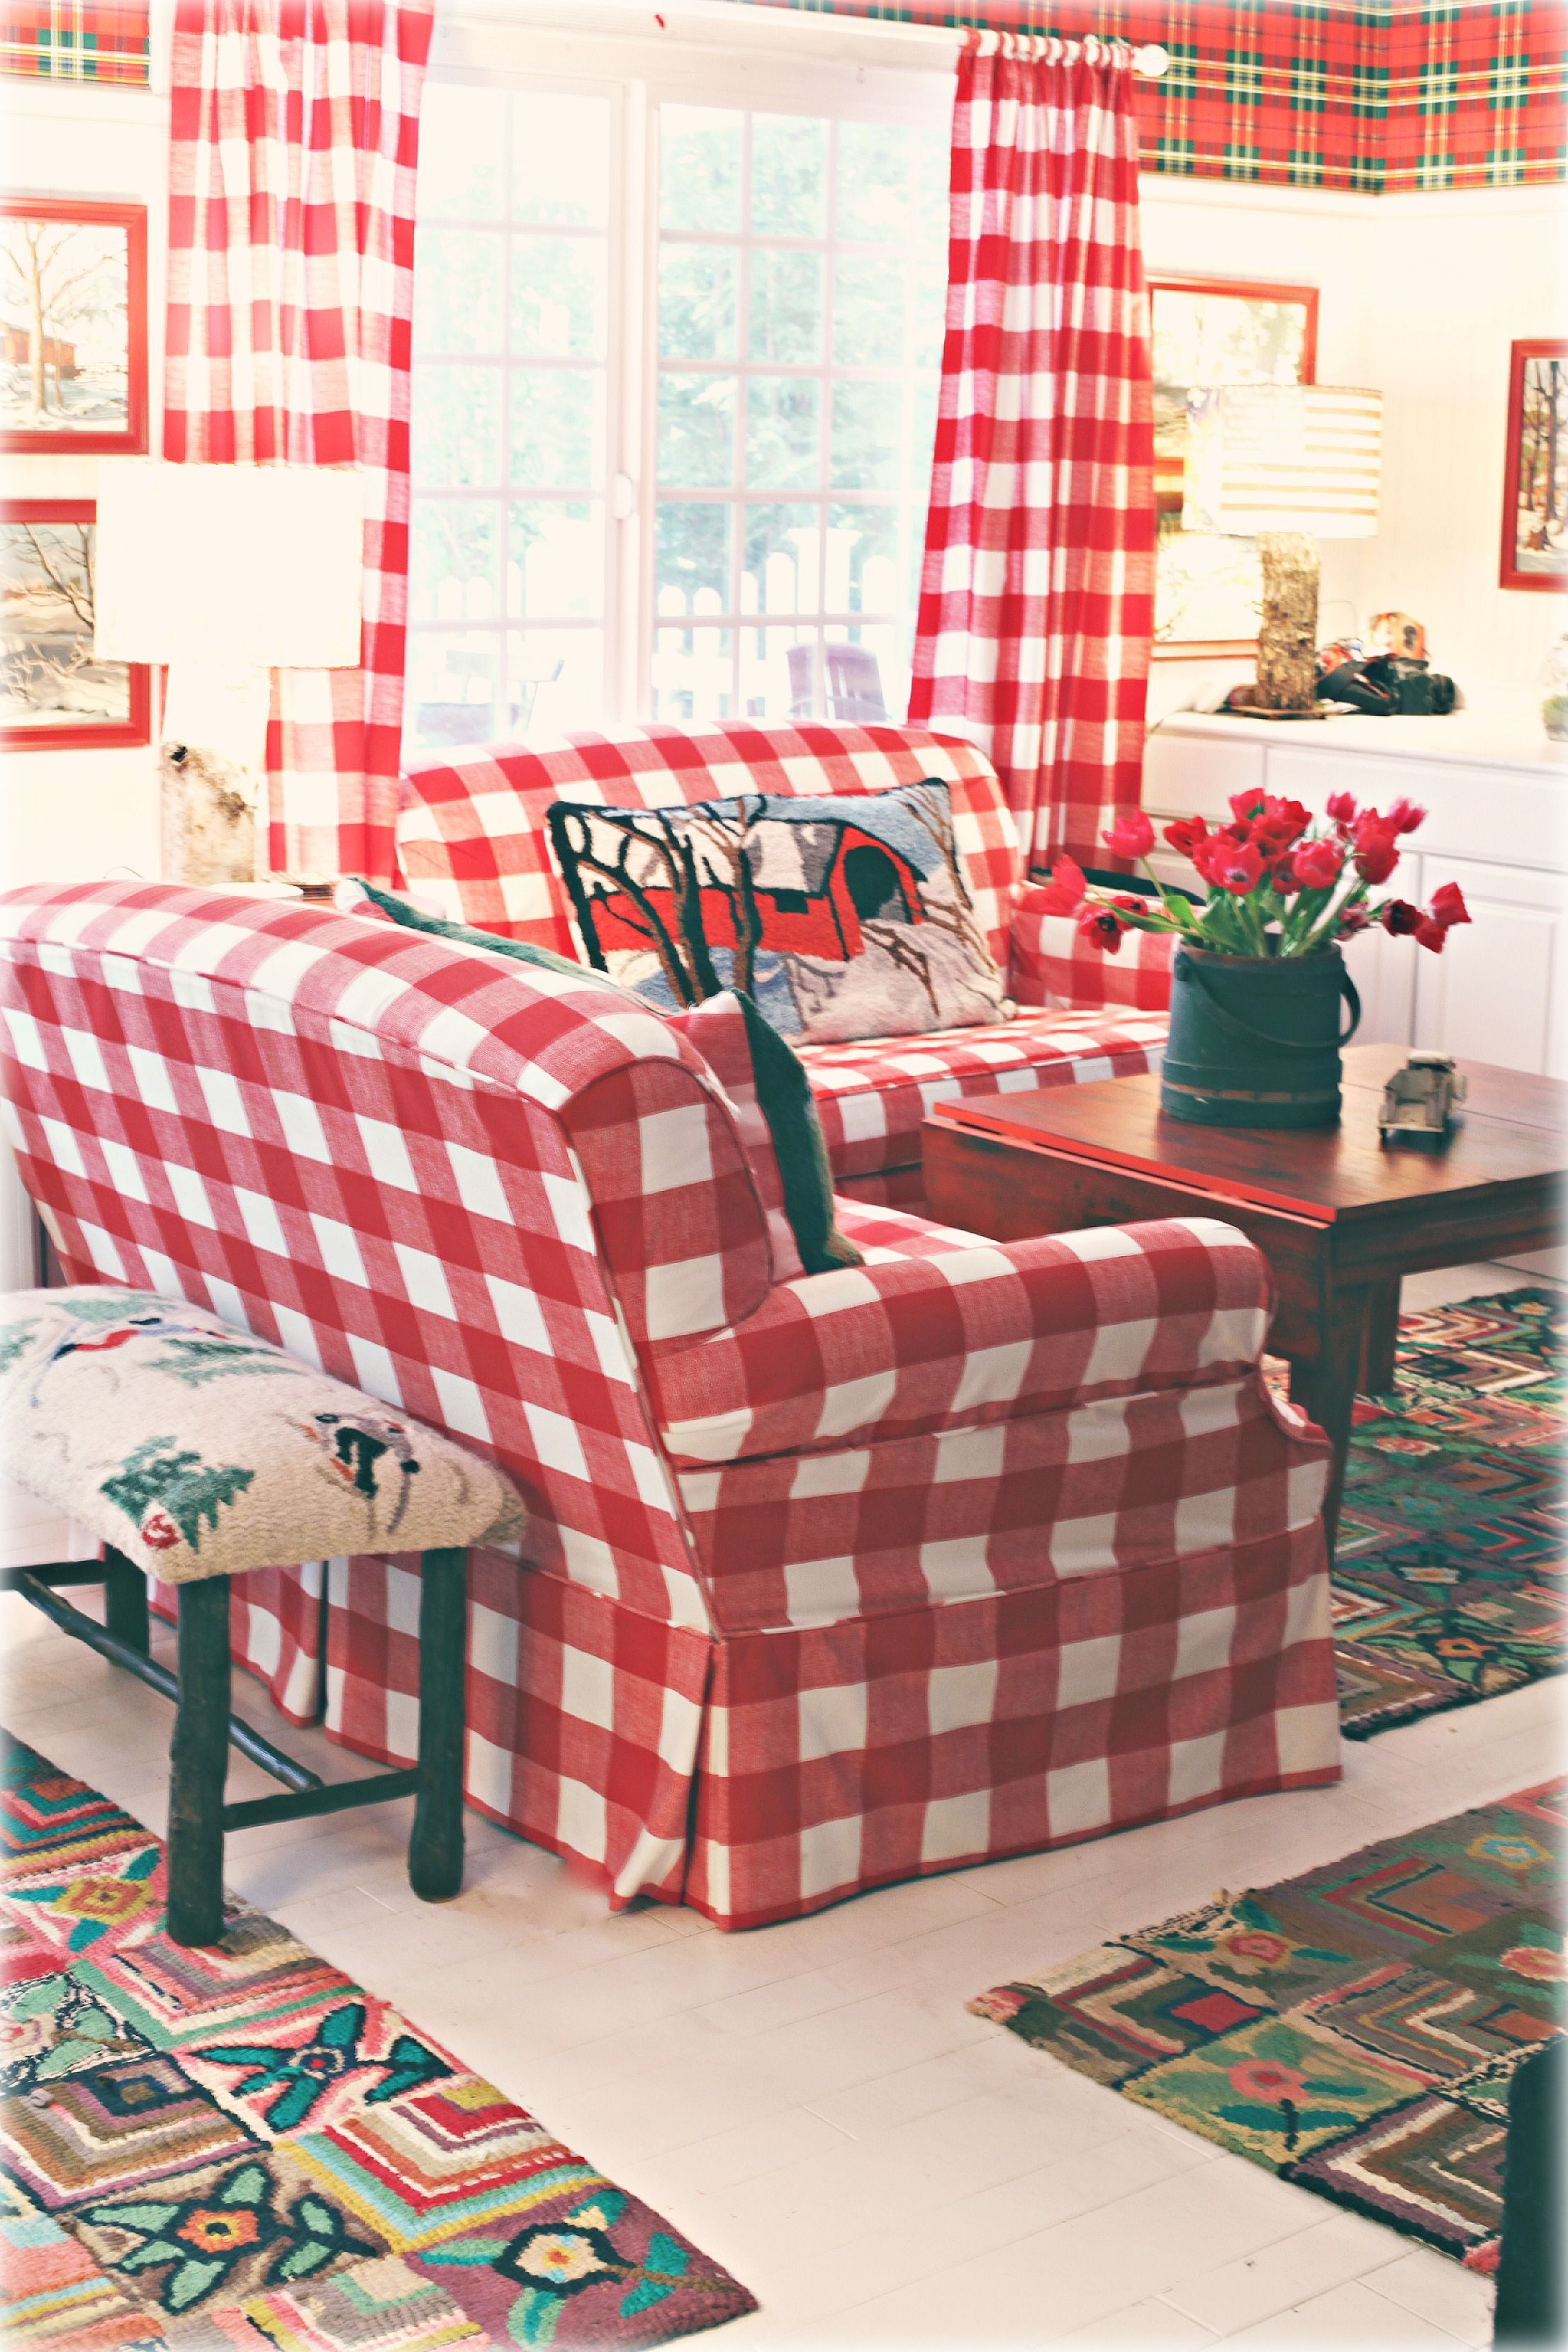 I Would Love To Have These Red Gingham Sofas In My Living Room